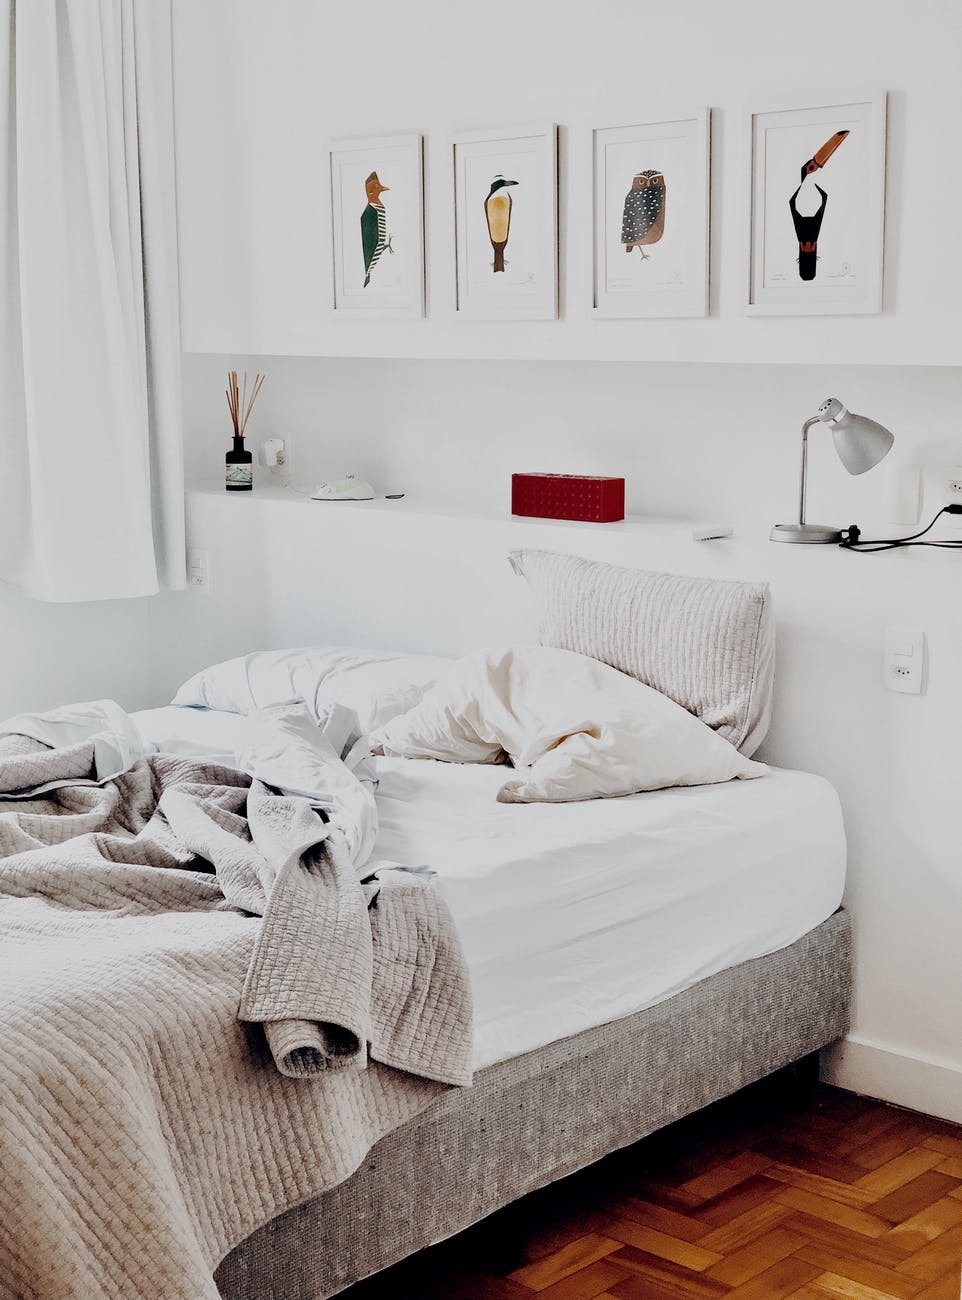 Your Guide for Selecting the Best High Quality Bedding